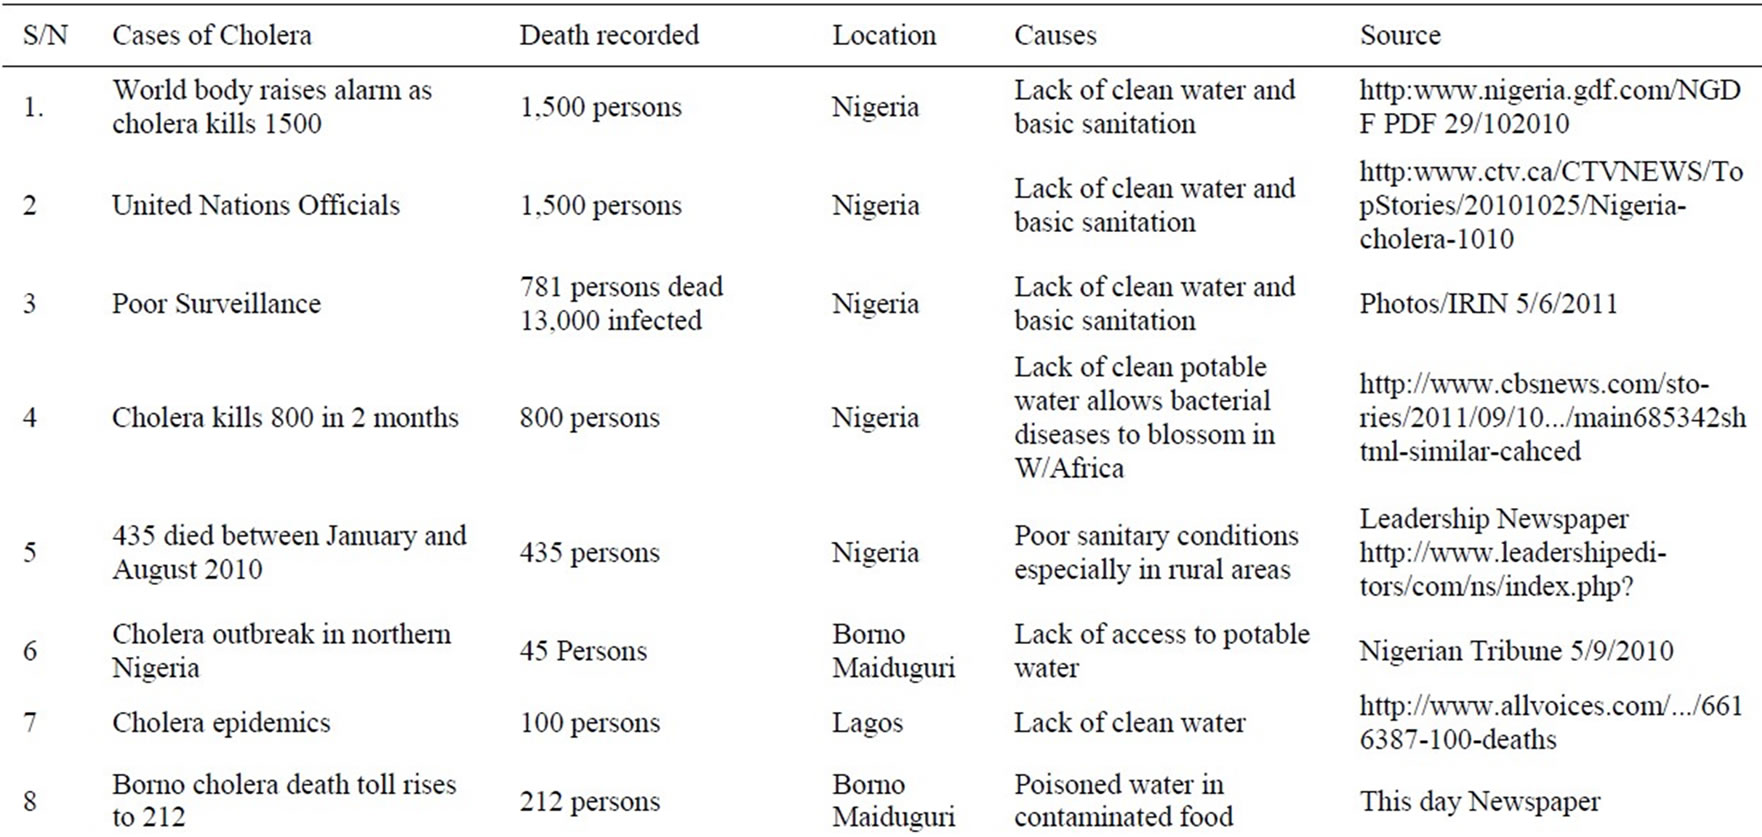 problems of water supply in the rural communities of nigeria On the whole rural water supply in nigeria has had many problems and unable to meet the challenges and have not contributed effectively to health, economic, social, and cultural development of nigerian rural communities as many rely on self water supply for both domestic and irrigation purposes.